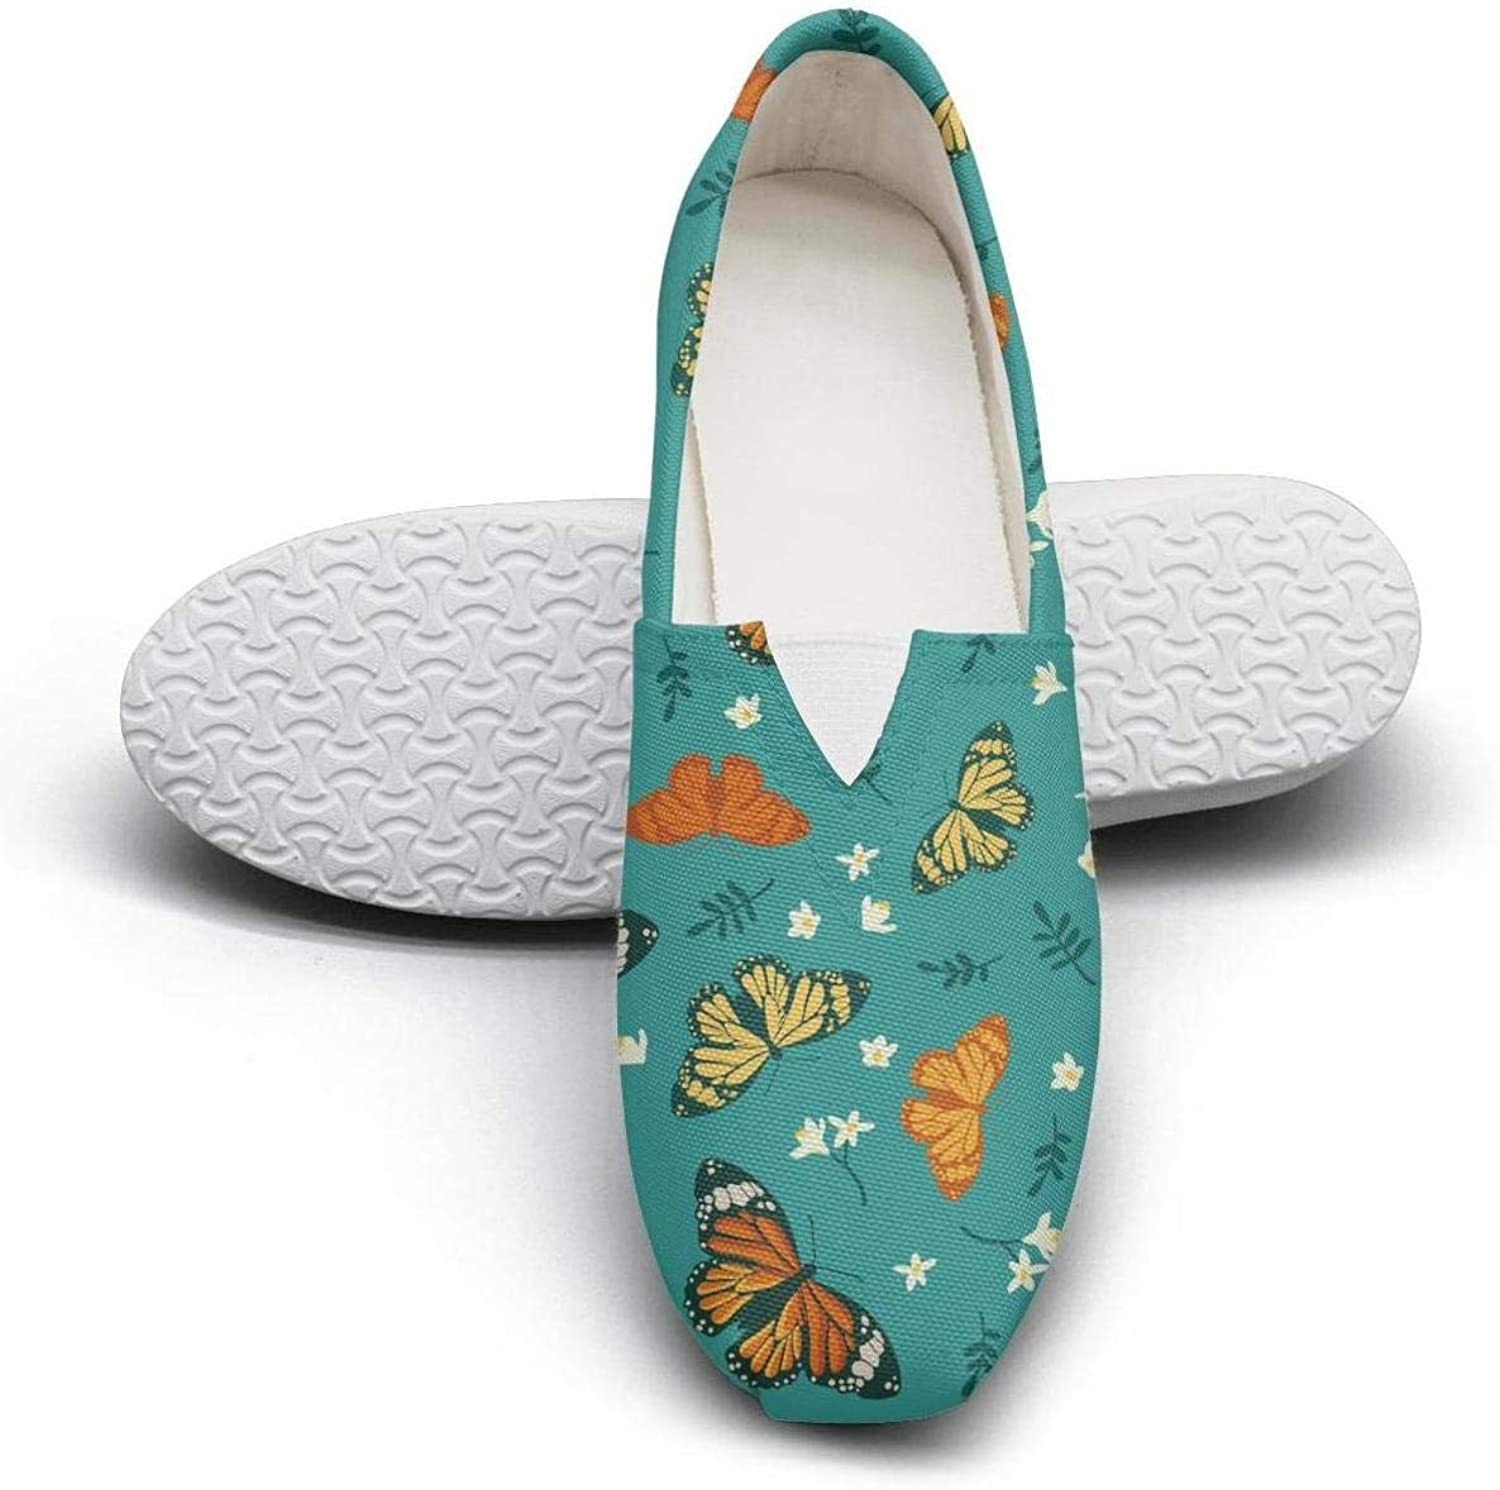 Fake lace butterfly butterfly puzzle Classics Women's Comfort Flat Walking Sneakers Girls Loafer shoes